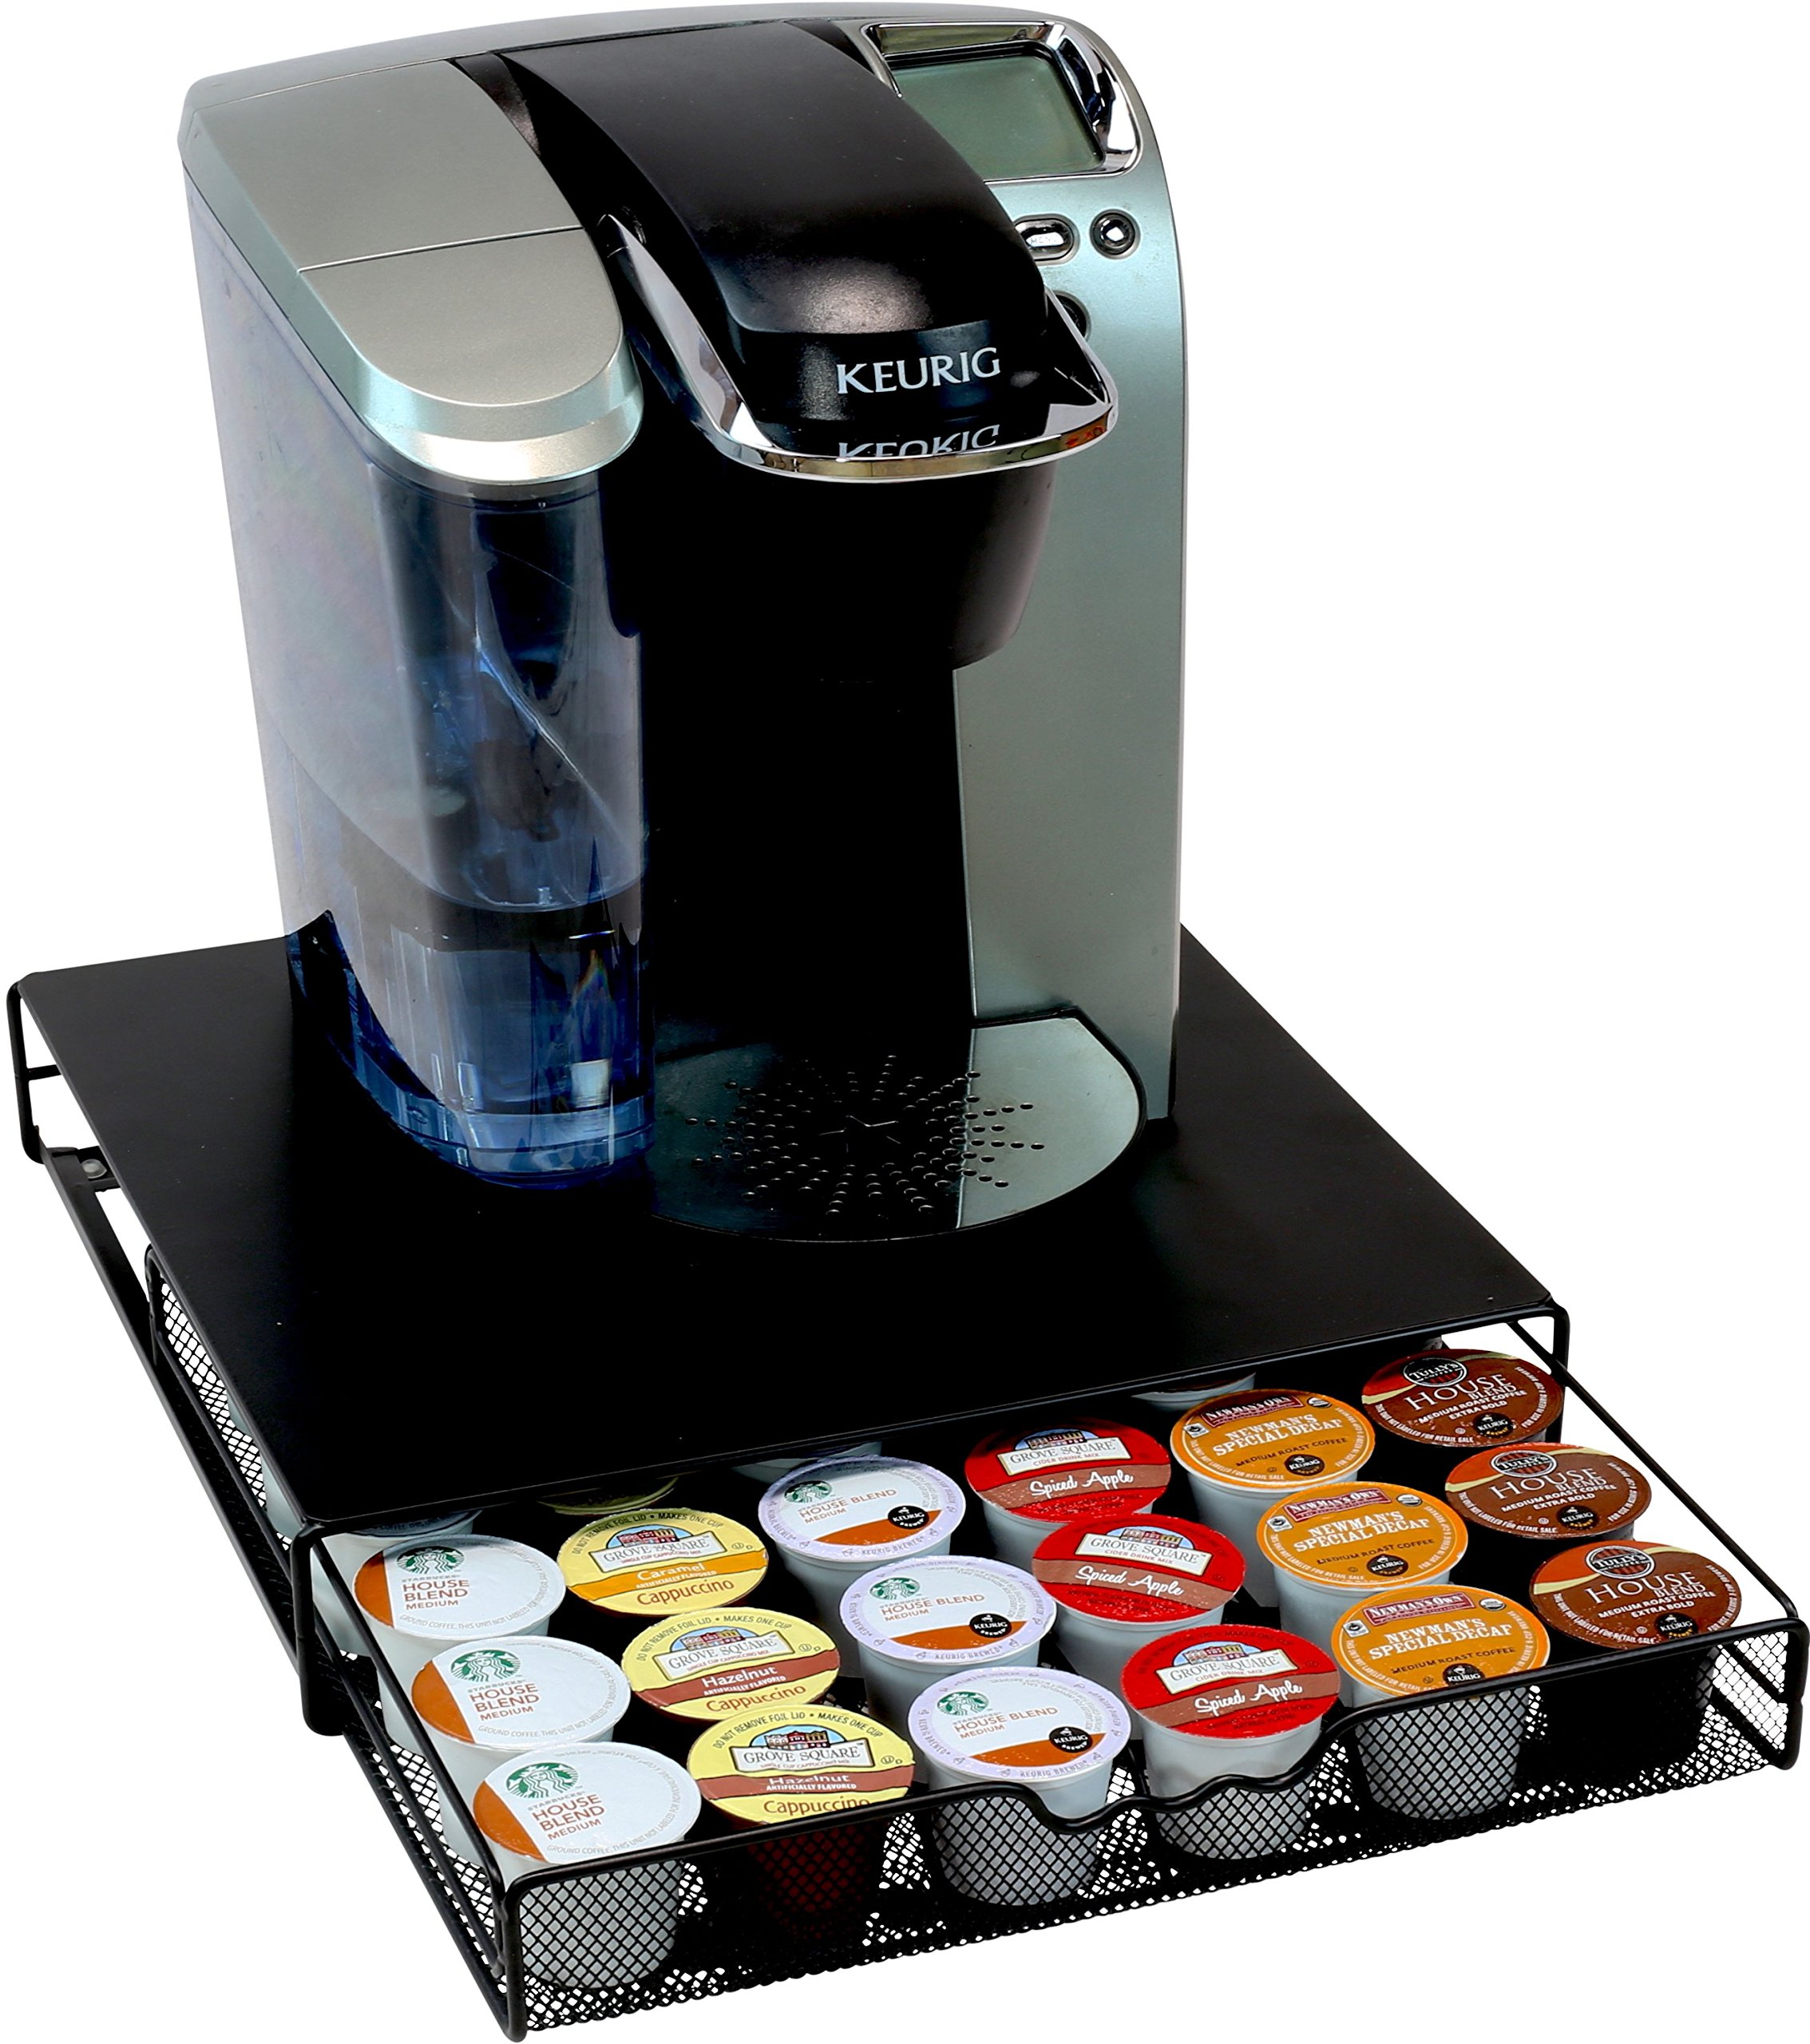 DecoBros K-cup Storage Drawer Holder for Keurig K-cup Coffee Pods by Deco Brothers (Image #2)